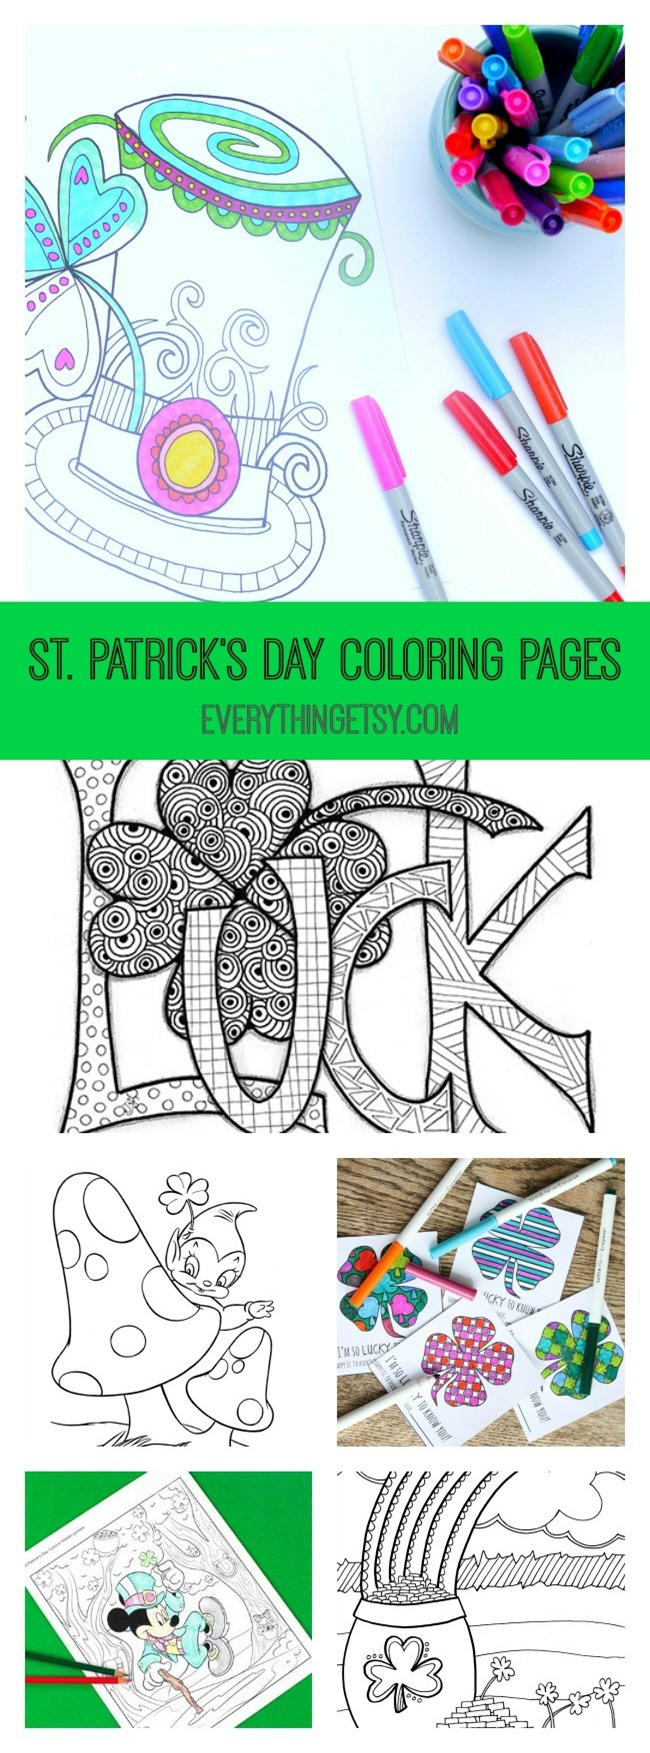 12-St.-Patricks-Day-Printable-Coloring-Pages-for-Adults-Kids-at-EverythingEtsy.jpg